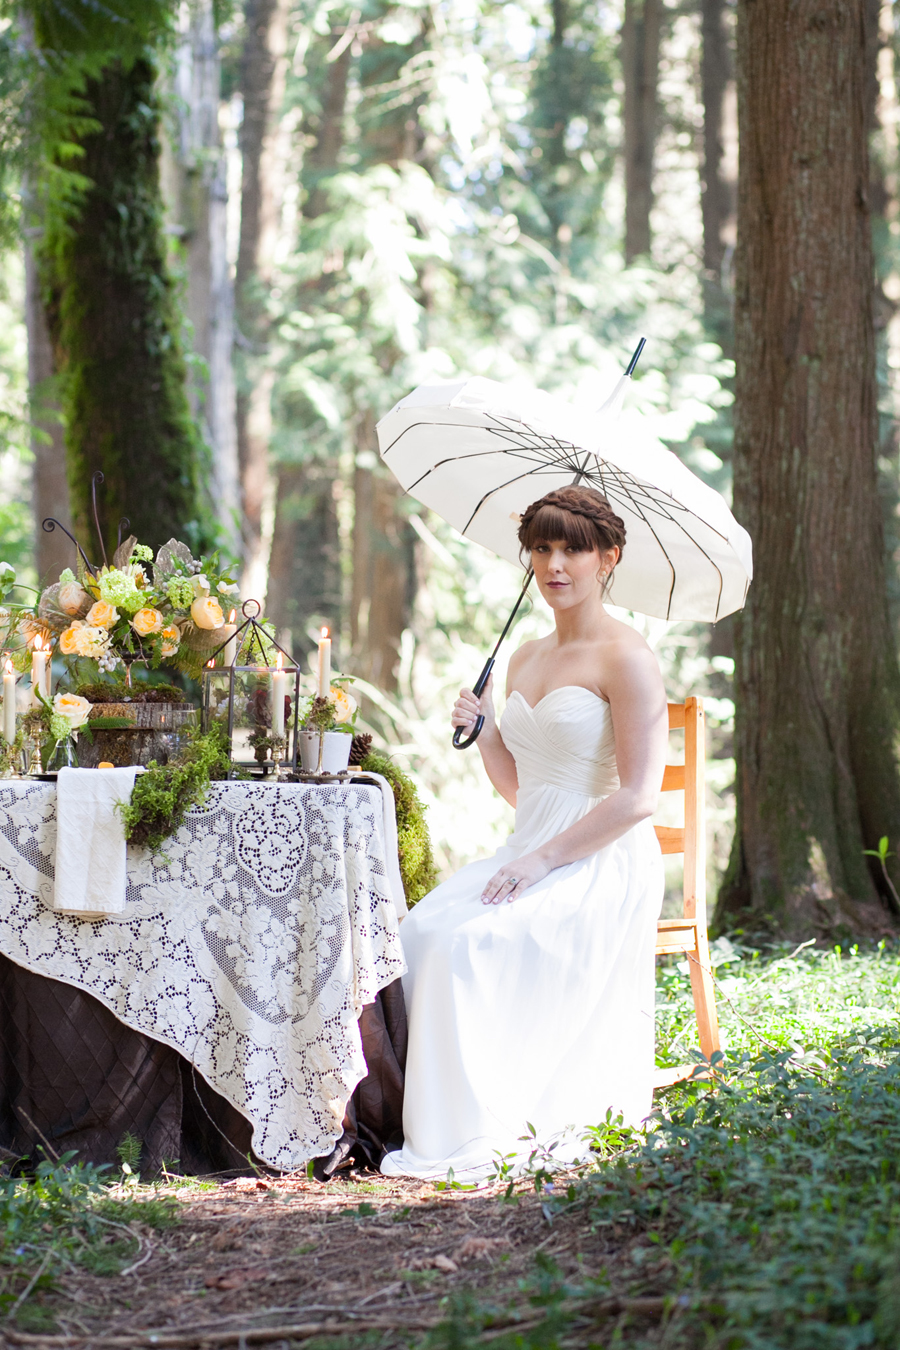 008-pacific-northwest-woodland-bridal-styled-session-lynden-washington-katheryn-moran-photography.jpg